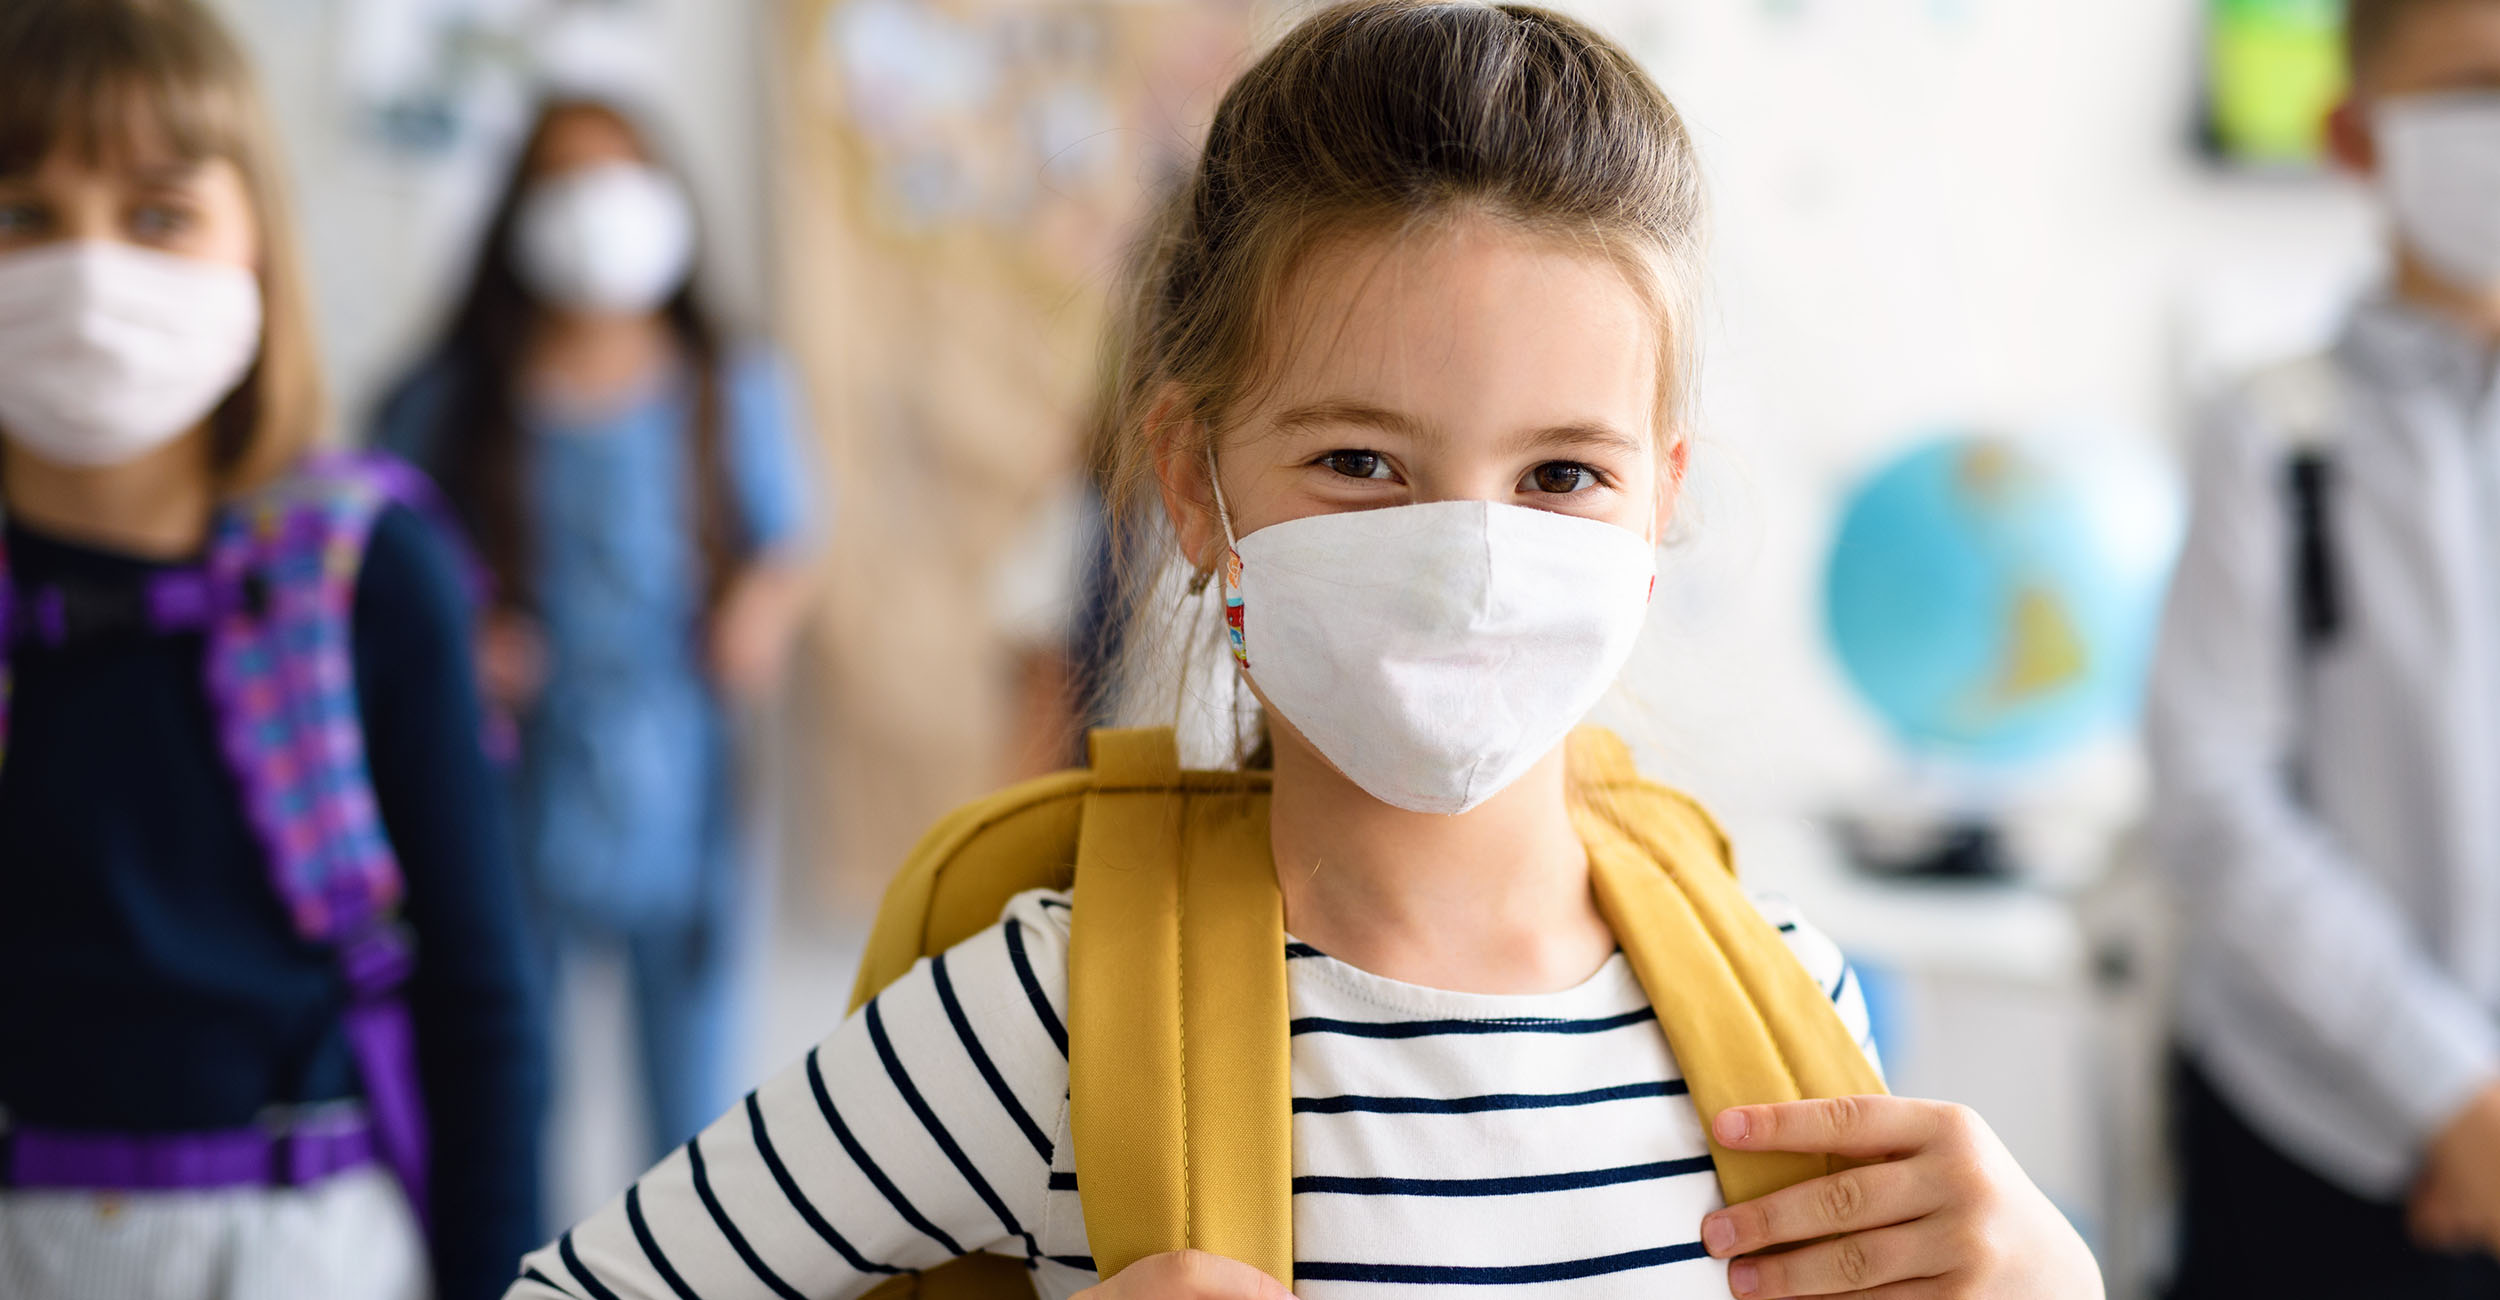 Photo of young girl wearing a protective mask in school.